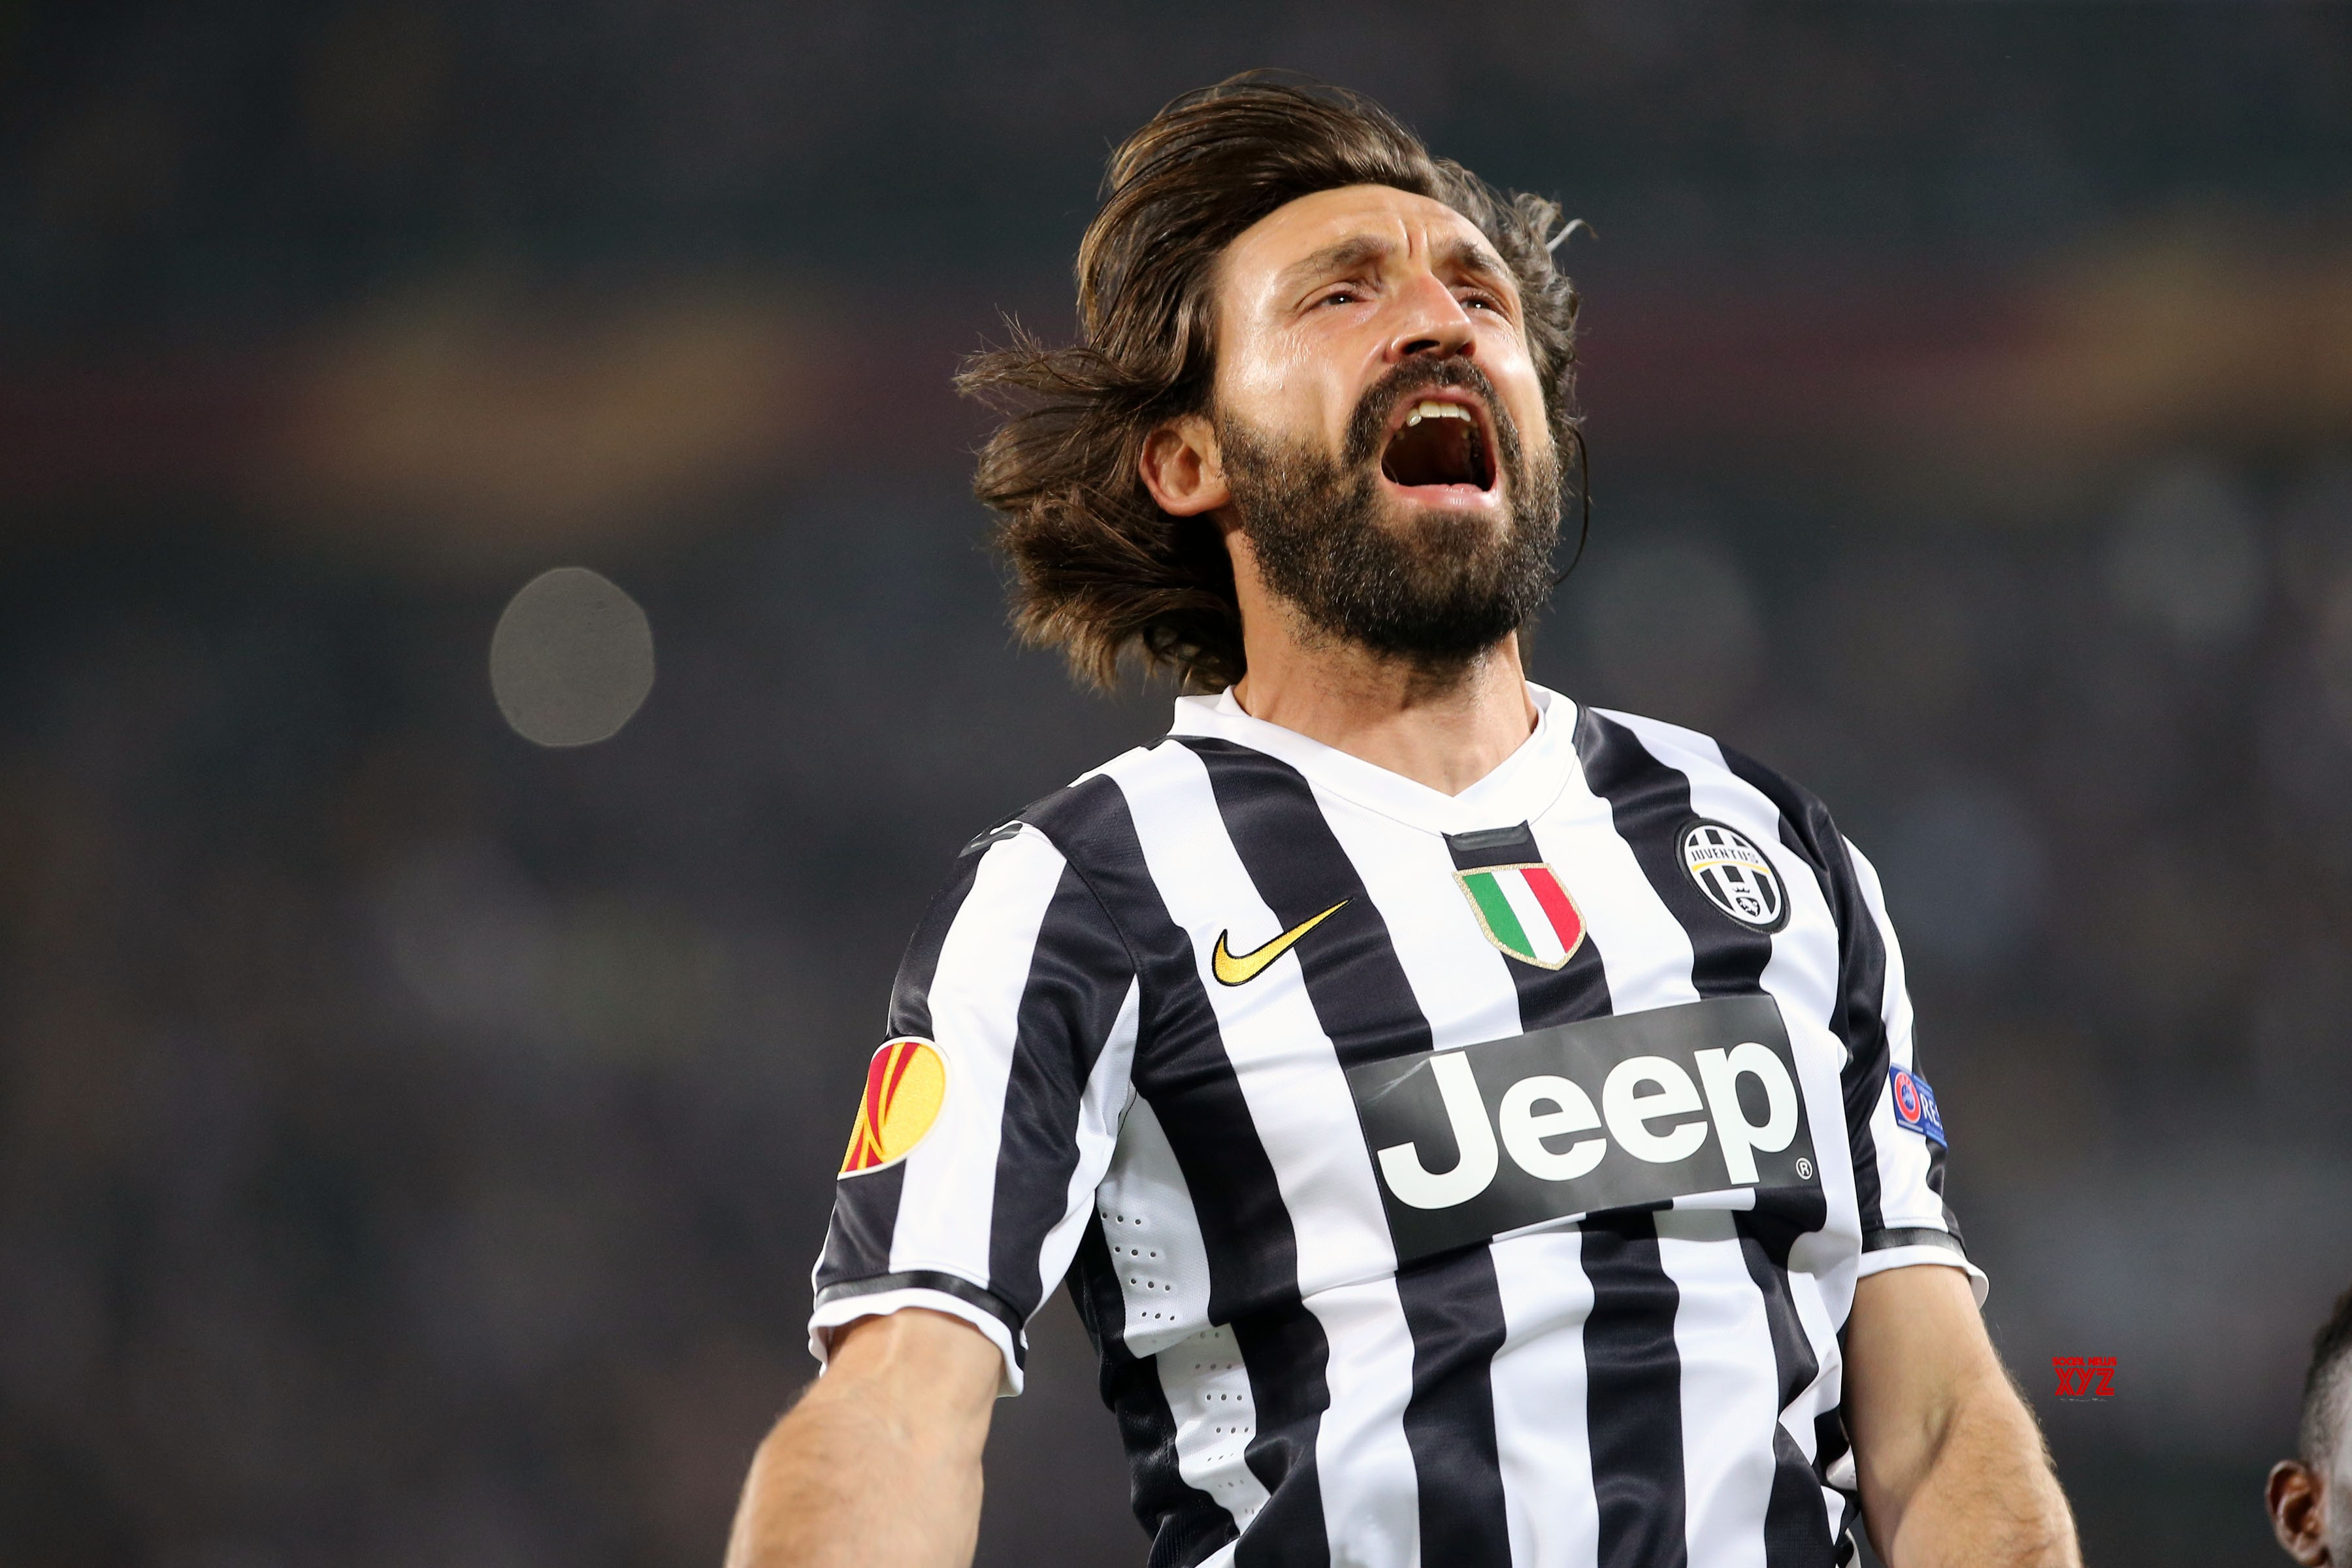 Andrea Pirlo appointed head coach of Juventus U23 team